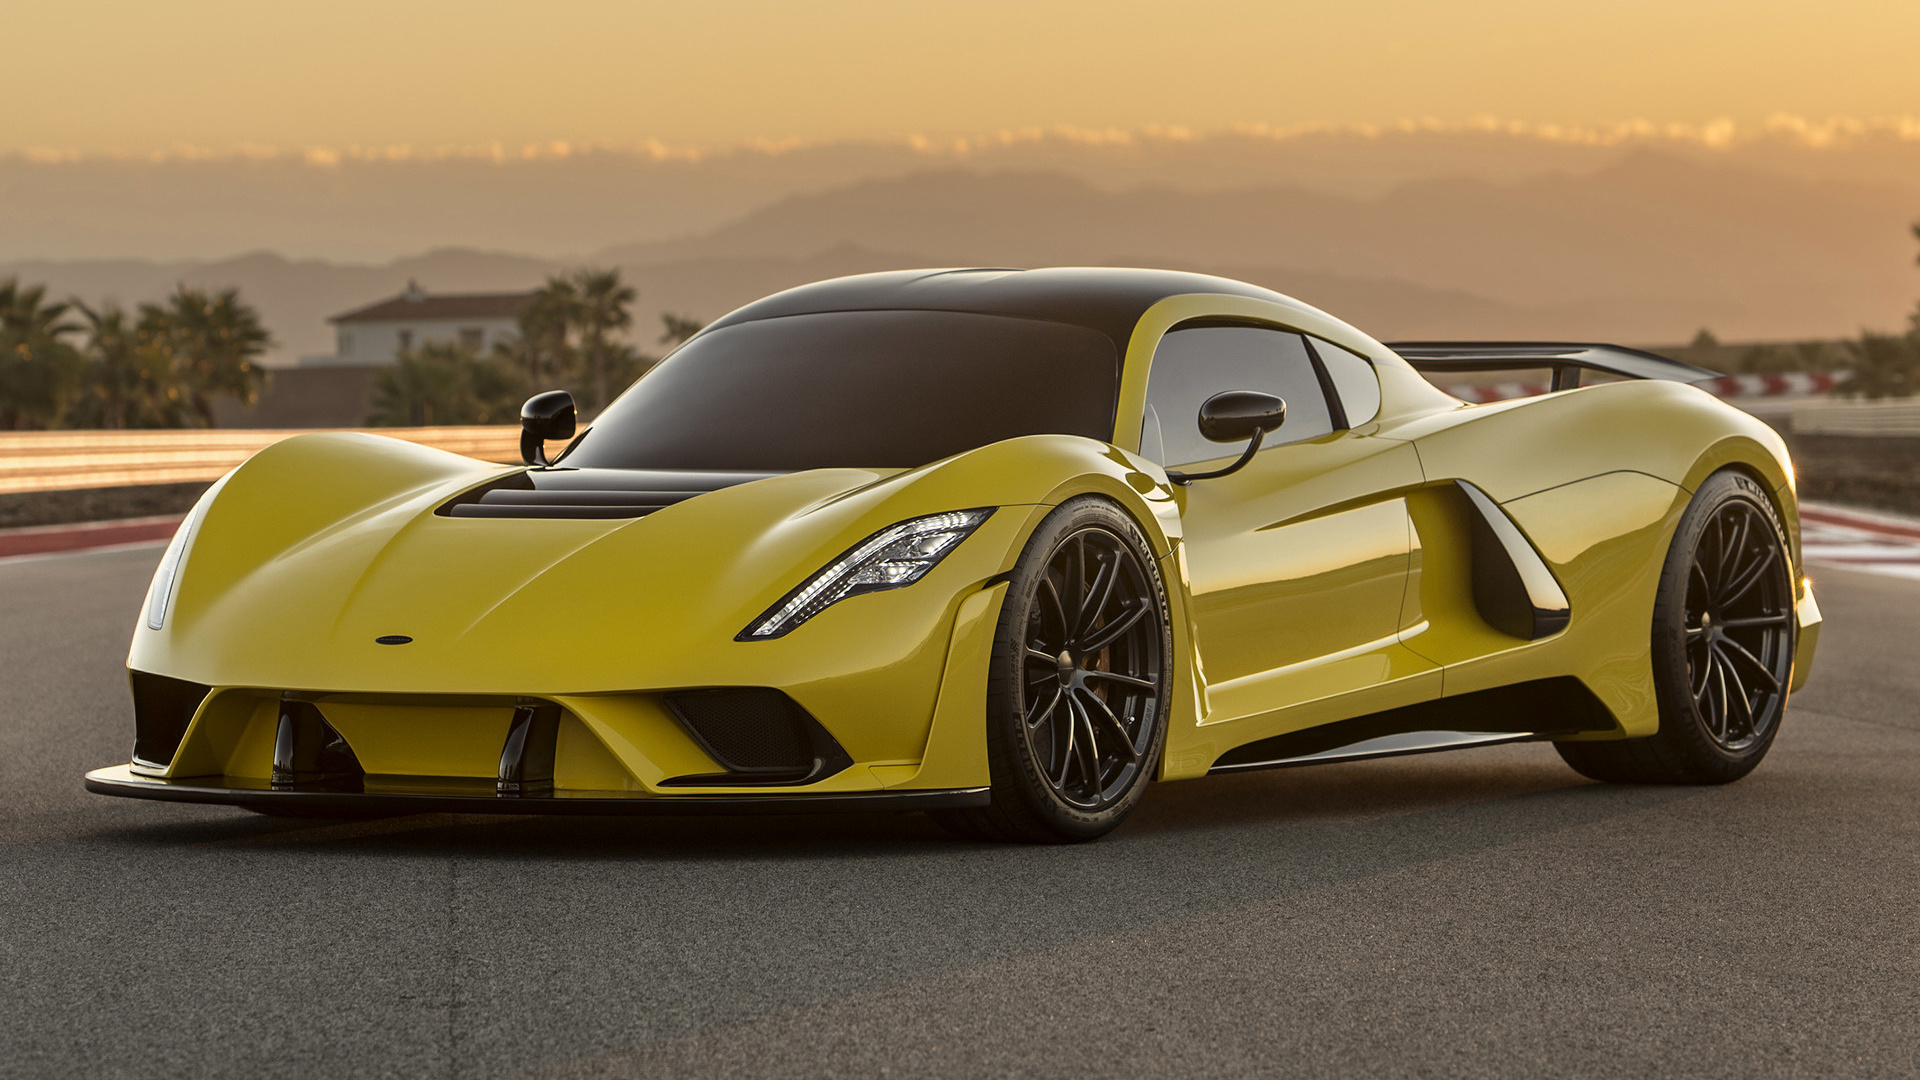 Alfa Romeo Cars Hd Wallpapers Hennessey Venom F5 2019 Wallpapers And Hd Images Car Pixel